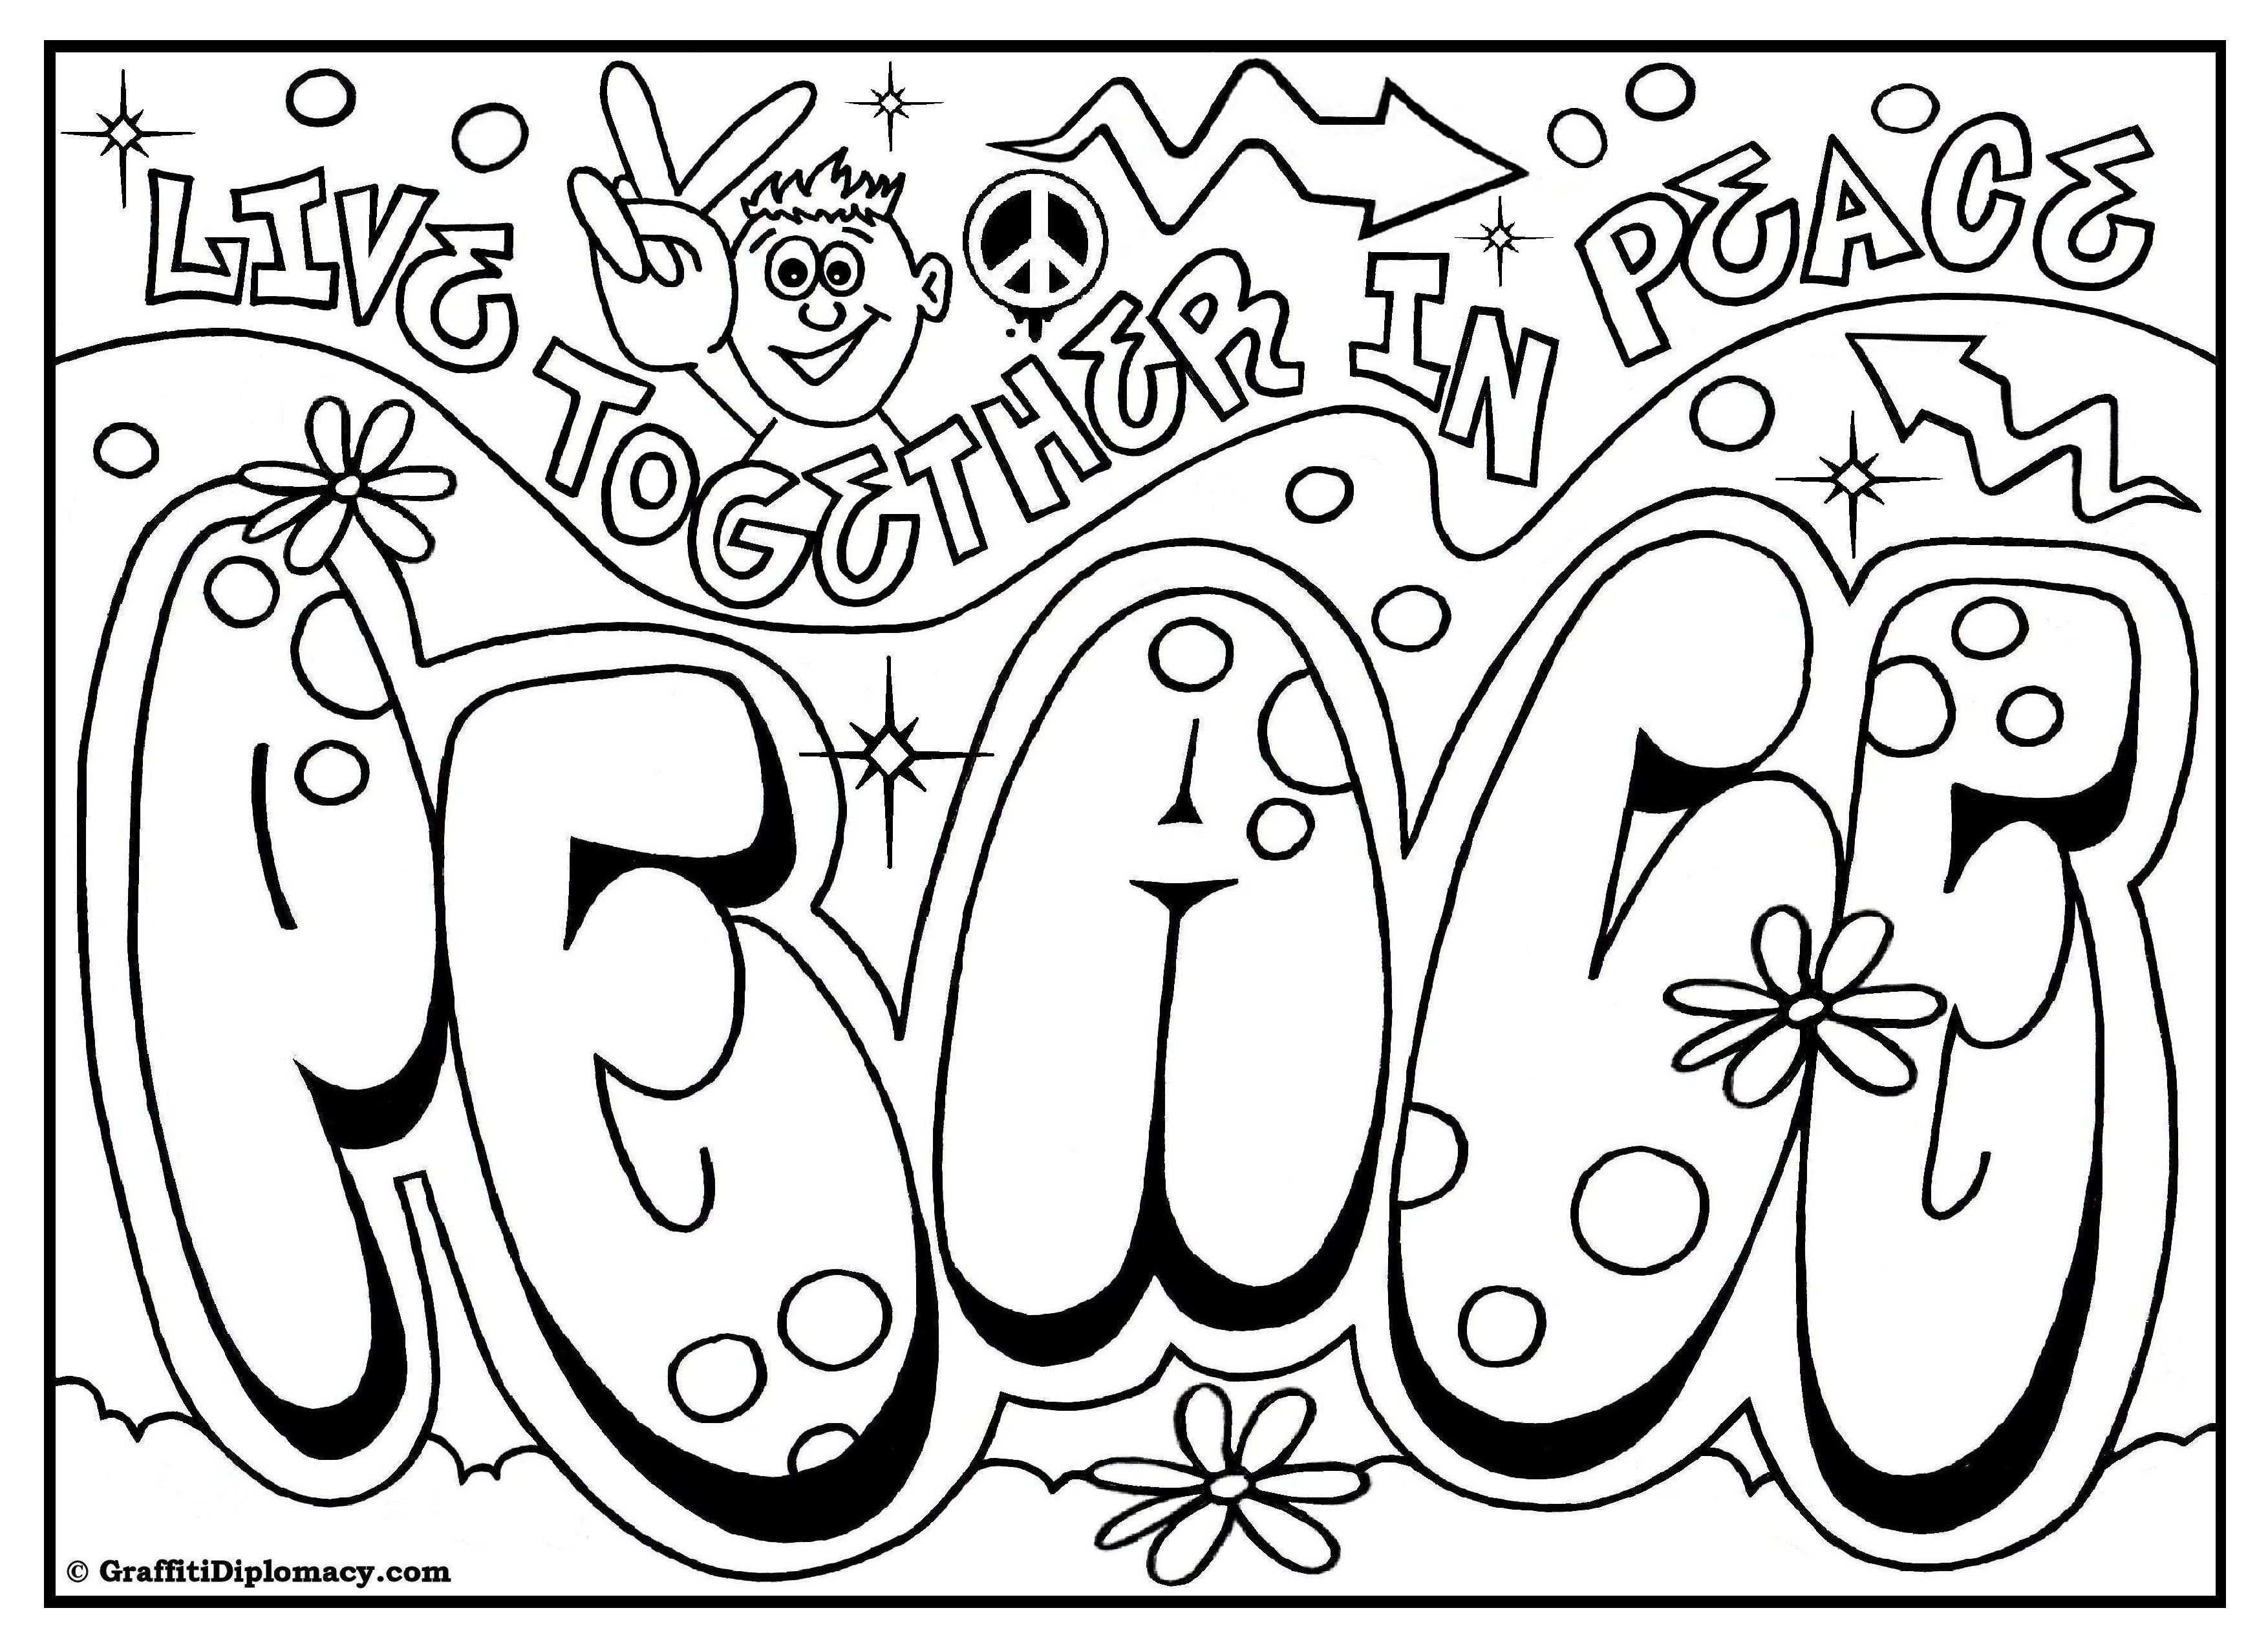 Pin By Kari Brasch On Ariel Bedroom Love Coloring Pages Printable Coloring Book Name Coloring Pages